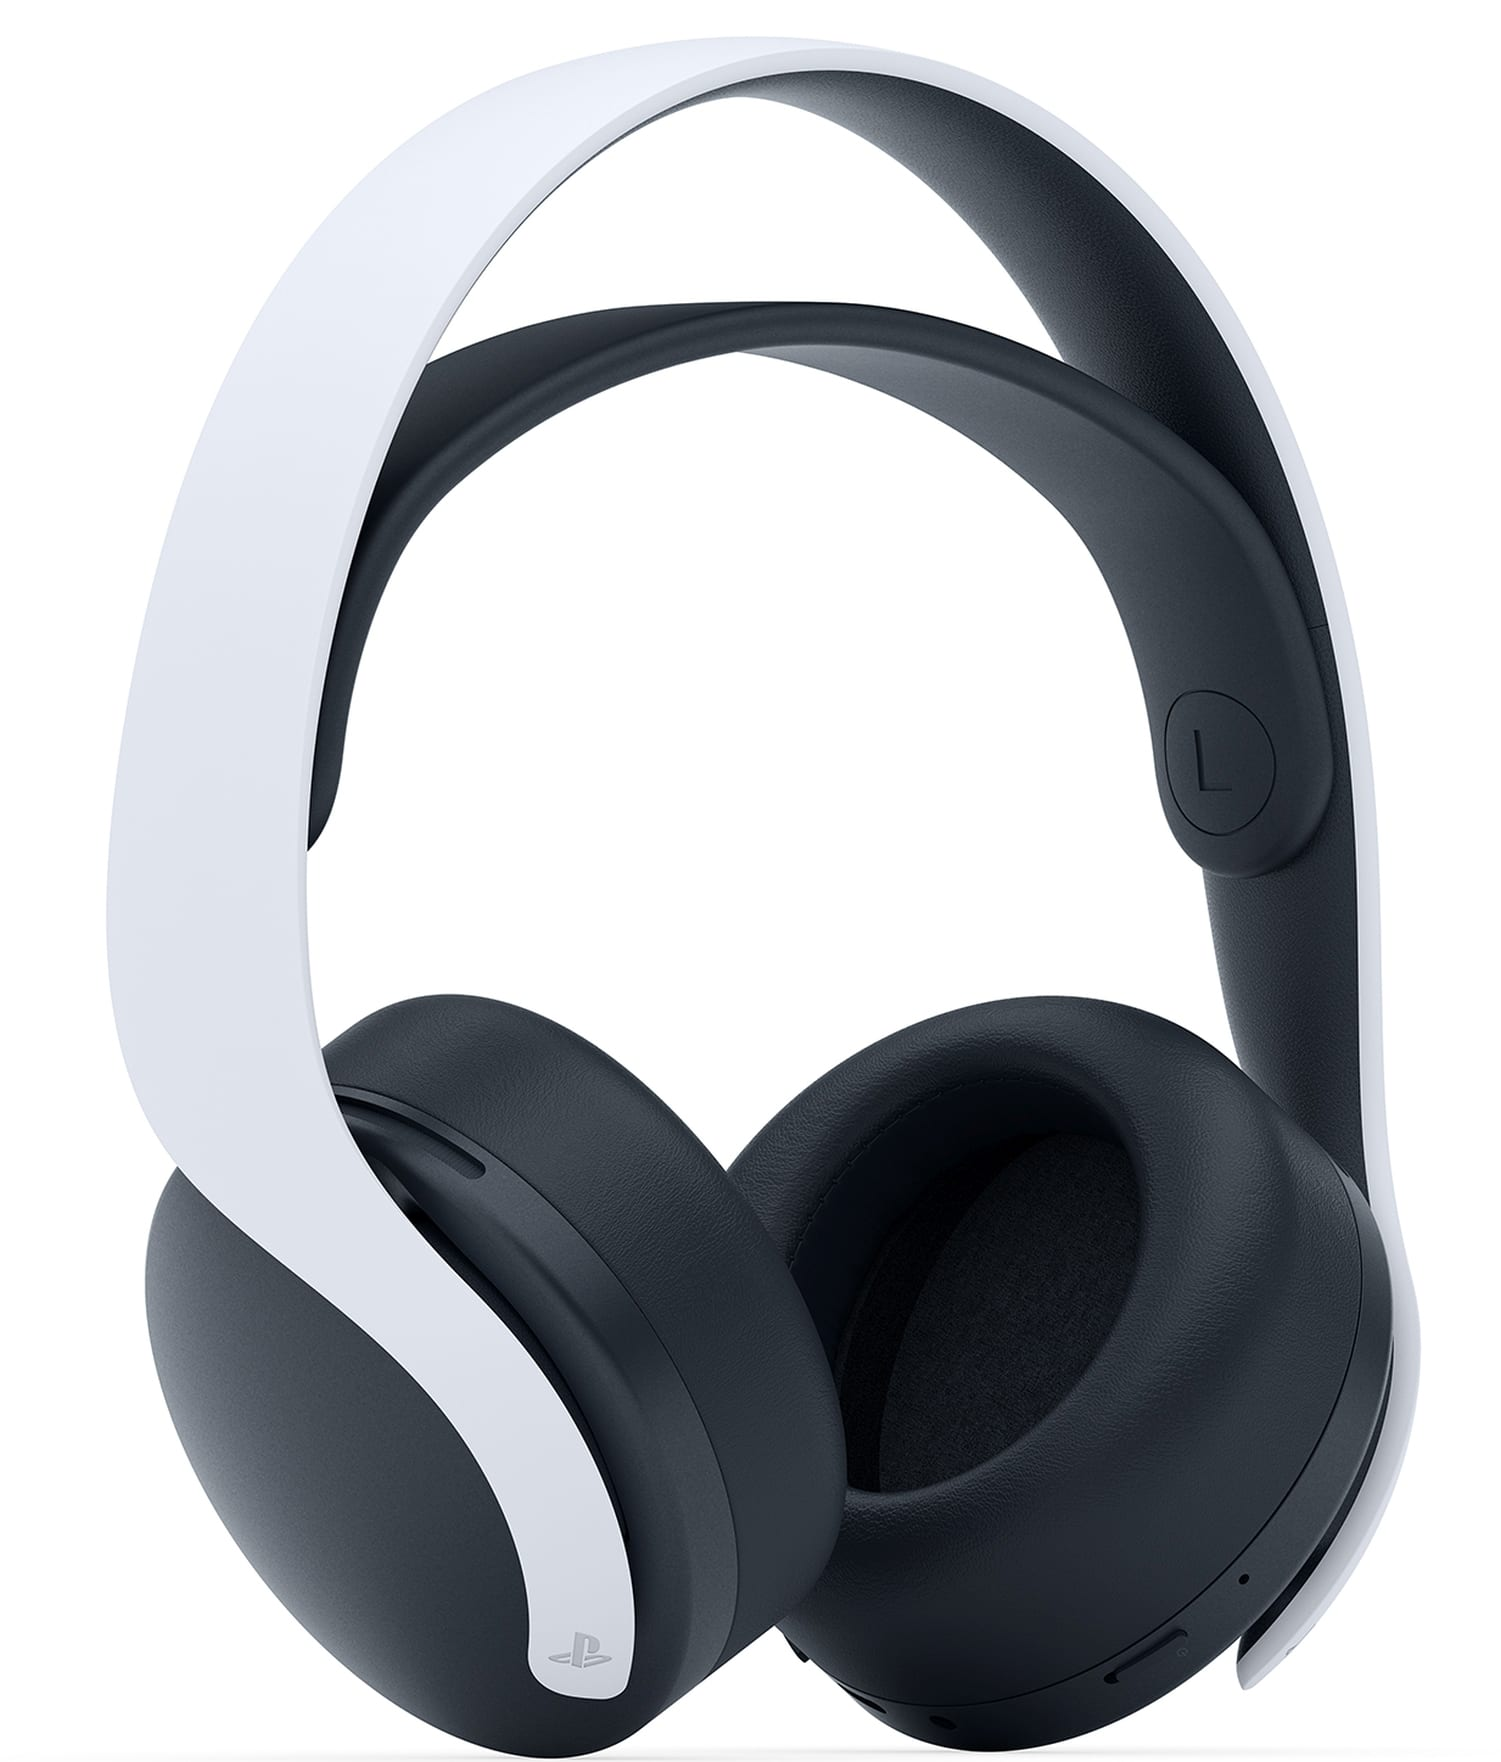 PULSE 3D Wireless Headset for PlayStation 5 - Walmart.com 99$ pickup in store